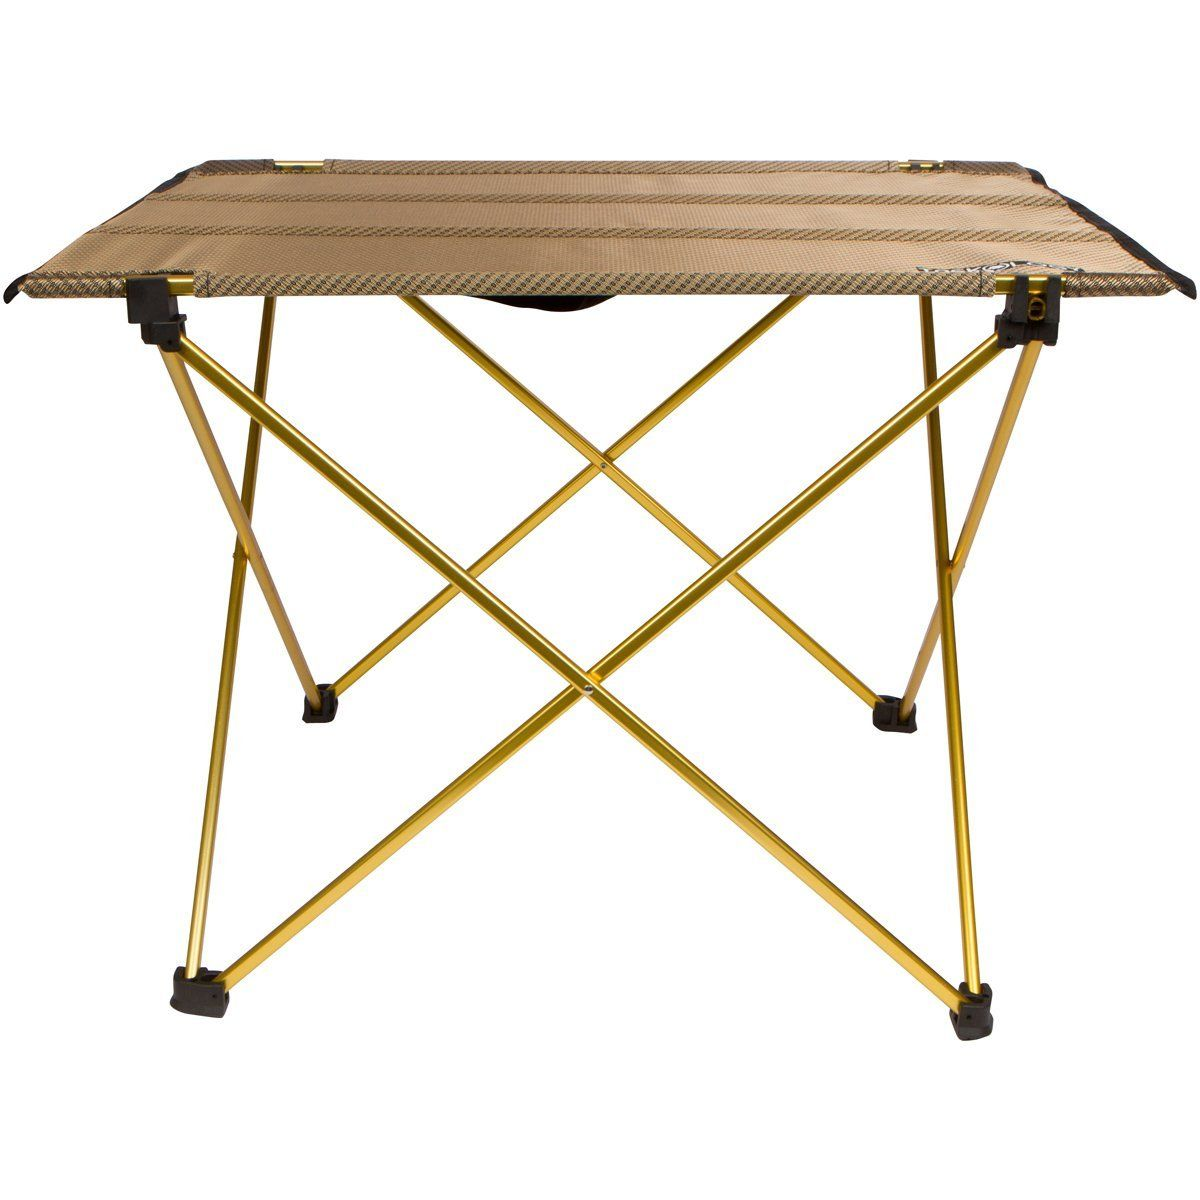 Good Trekology Compact Portable Camping Table   Folding Table In A Bag For Beach  * Click Image